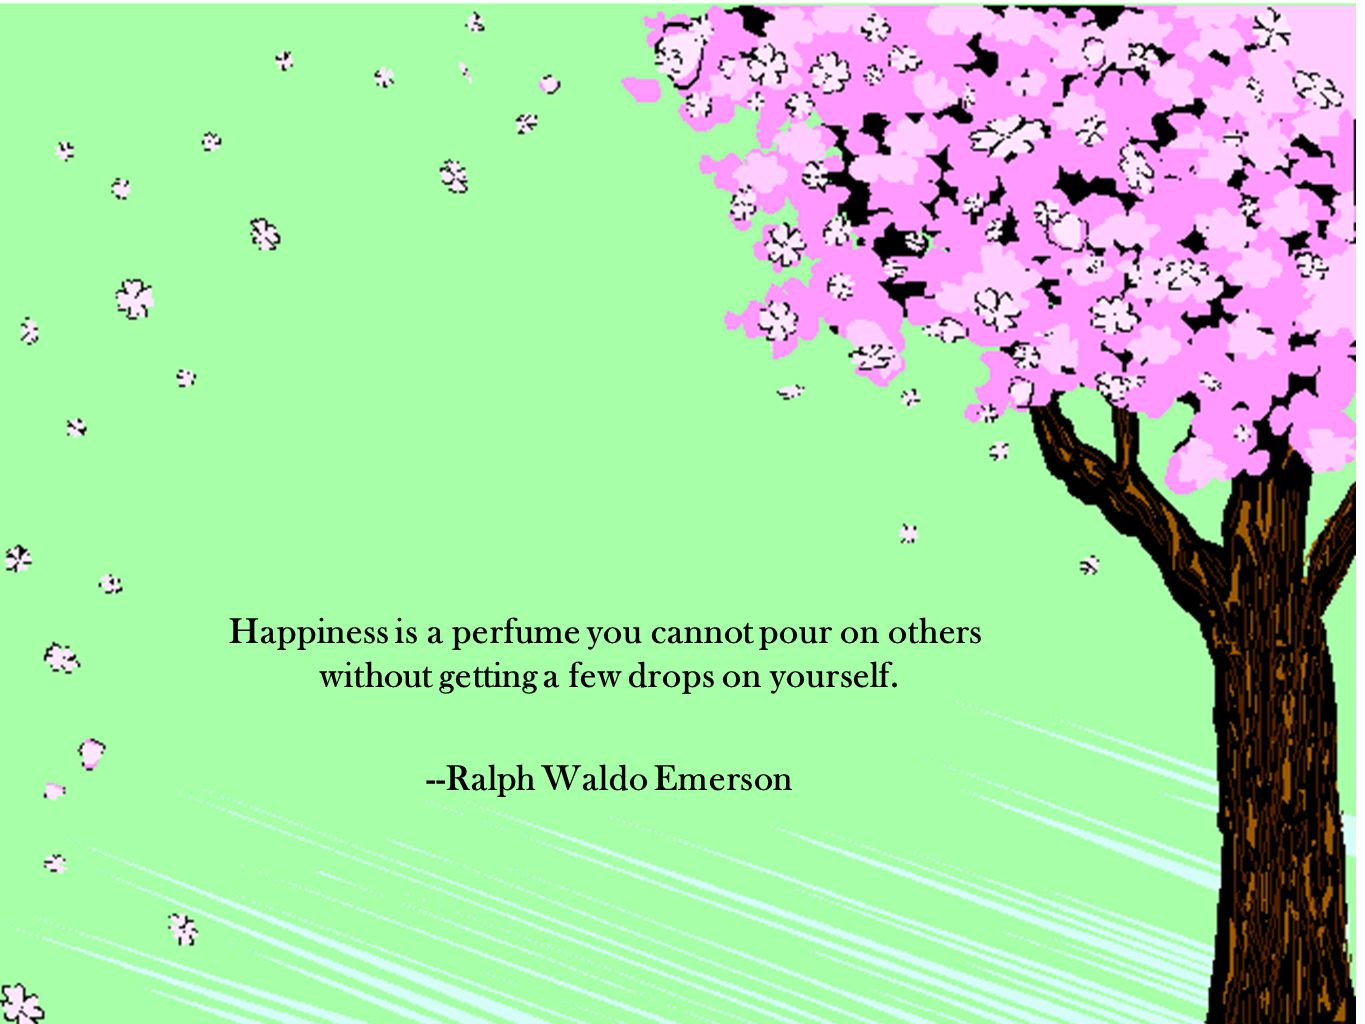 Happiness is a perfume you cannot pour on others without getting a few drops on yourself.